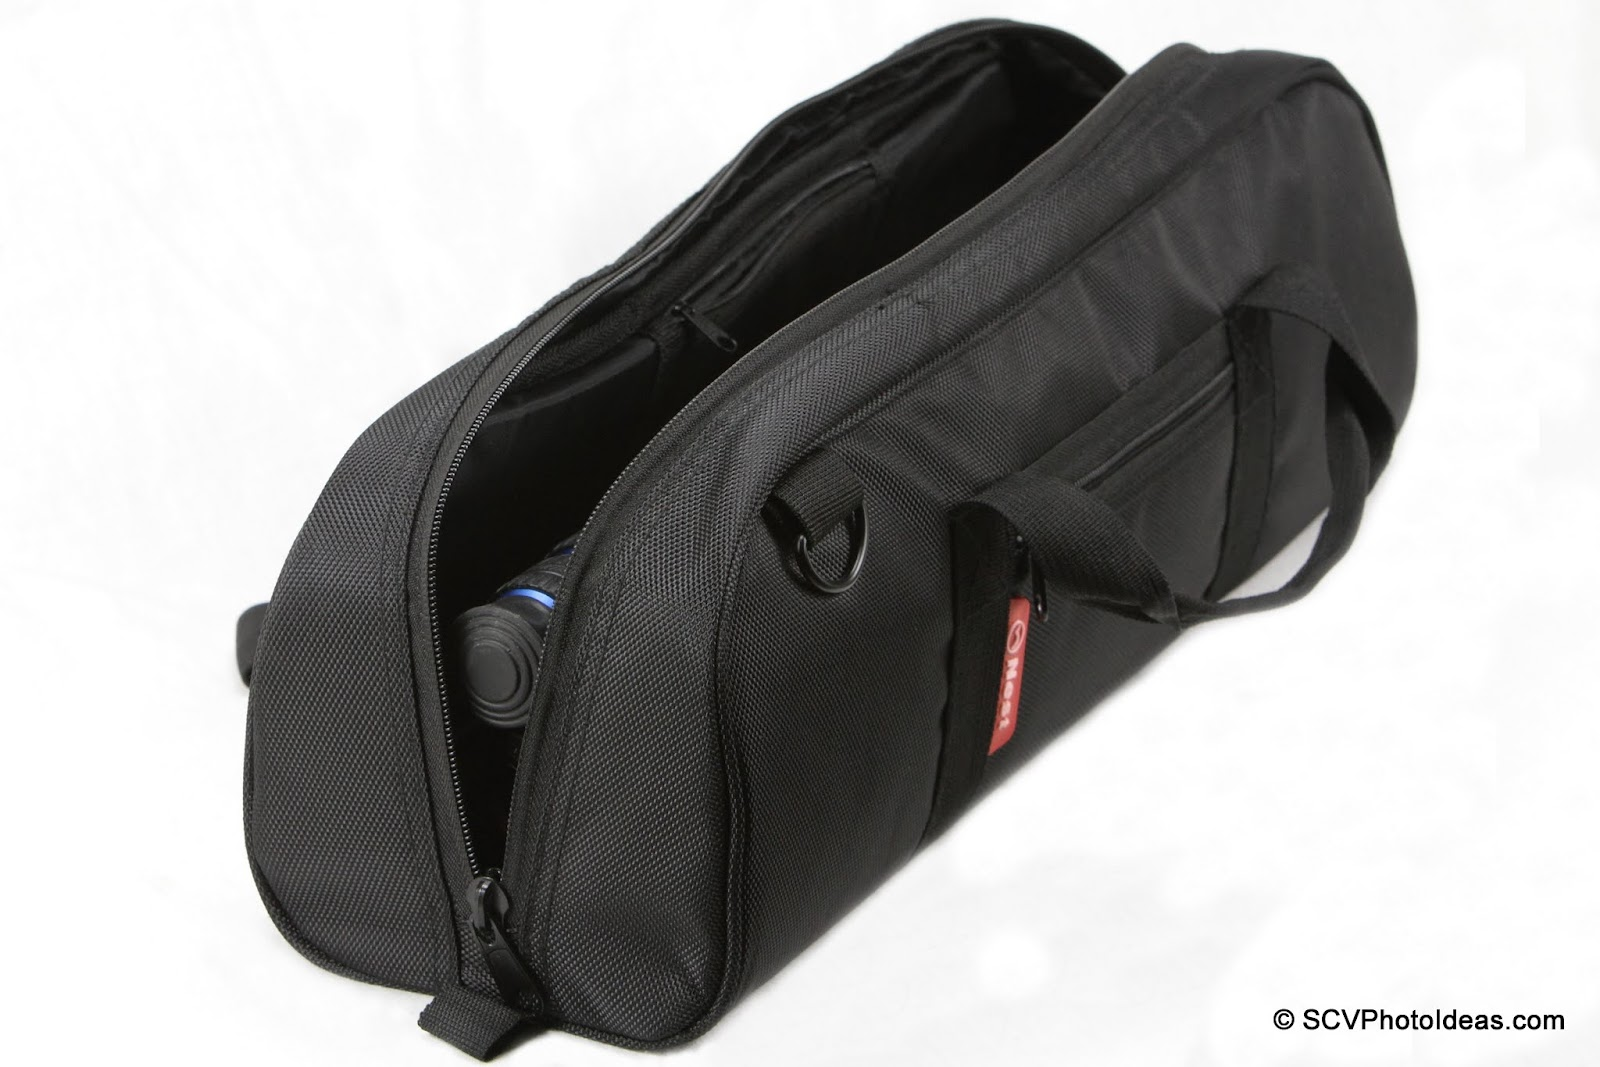 Nest NT-6294CT w/ Sunwayfoto DB-36DDH folded inside carrying bag